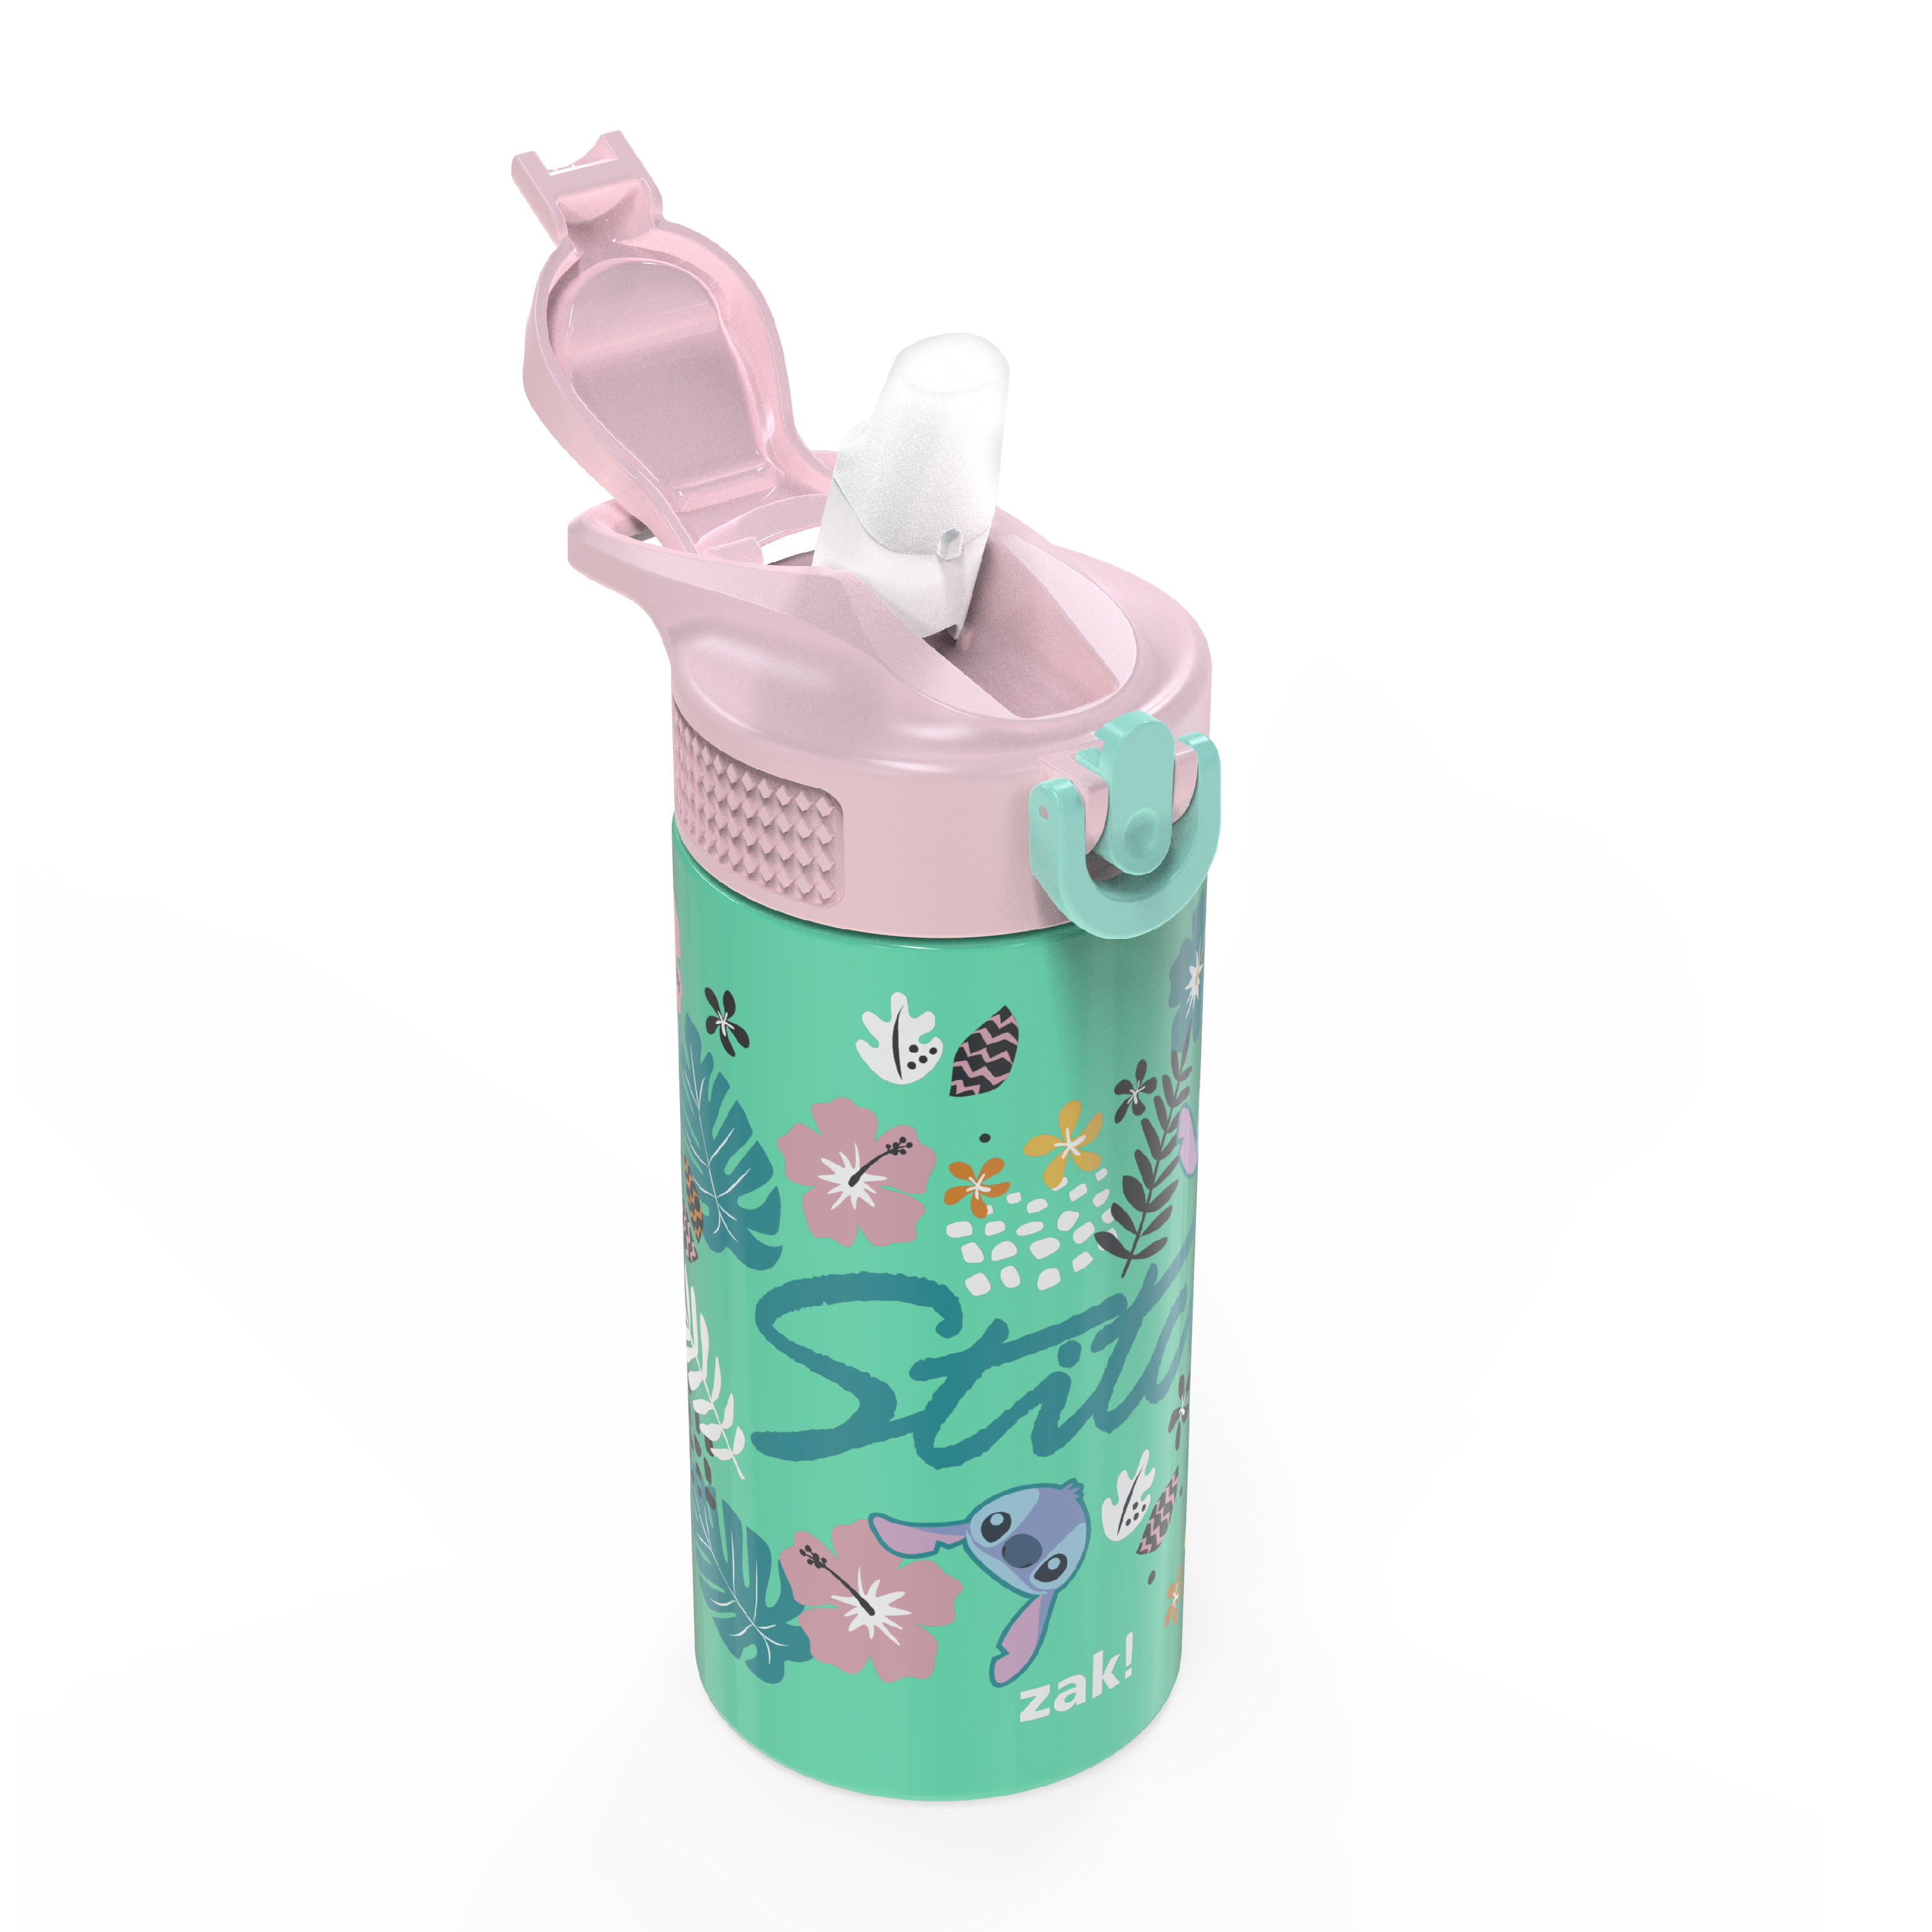 Disney 14 ounce Stainless Steel Vacuum Insulated Water Bottle, Lilo and Stitch slideshow image 4